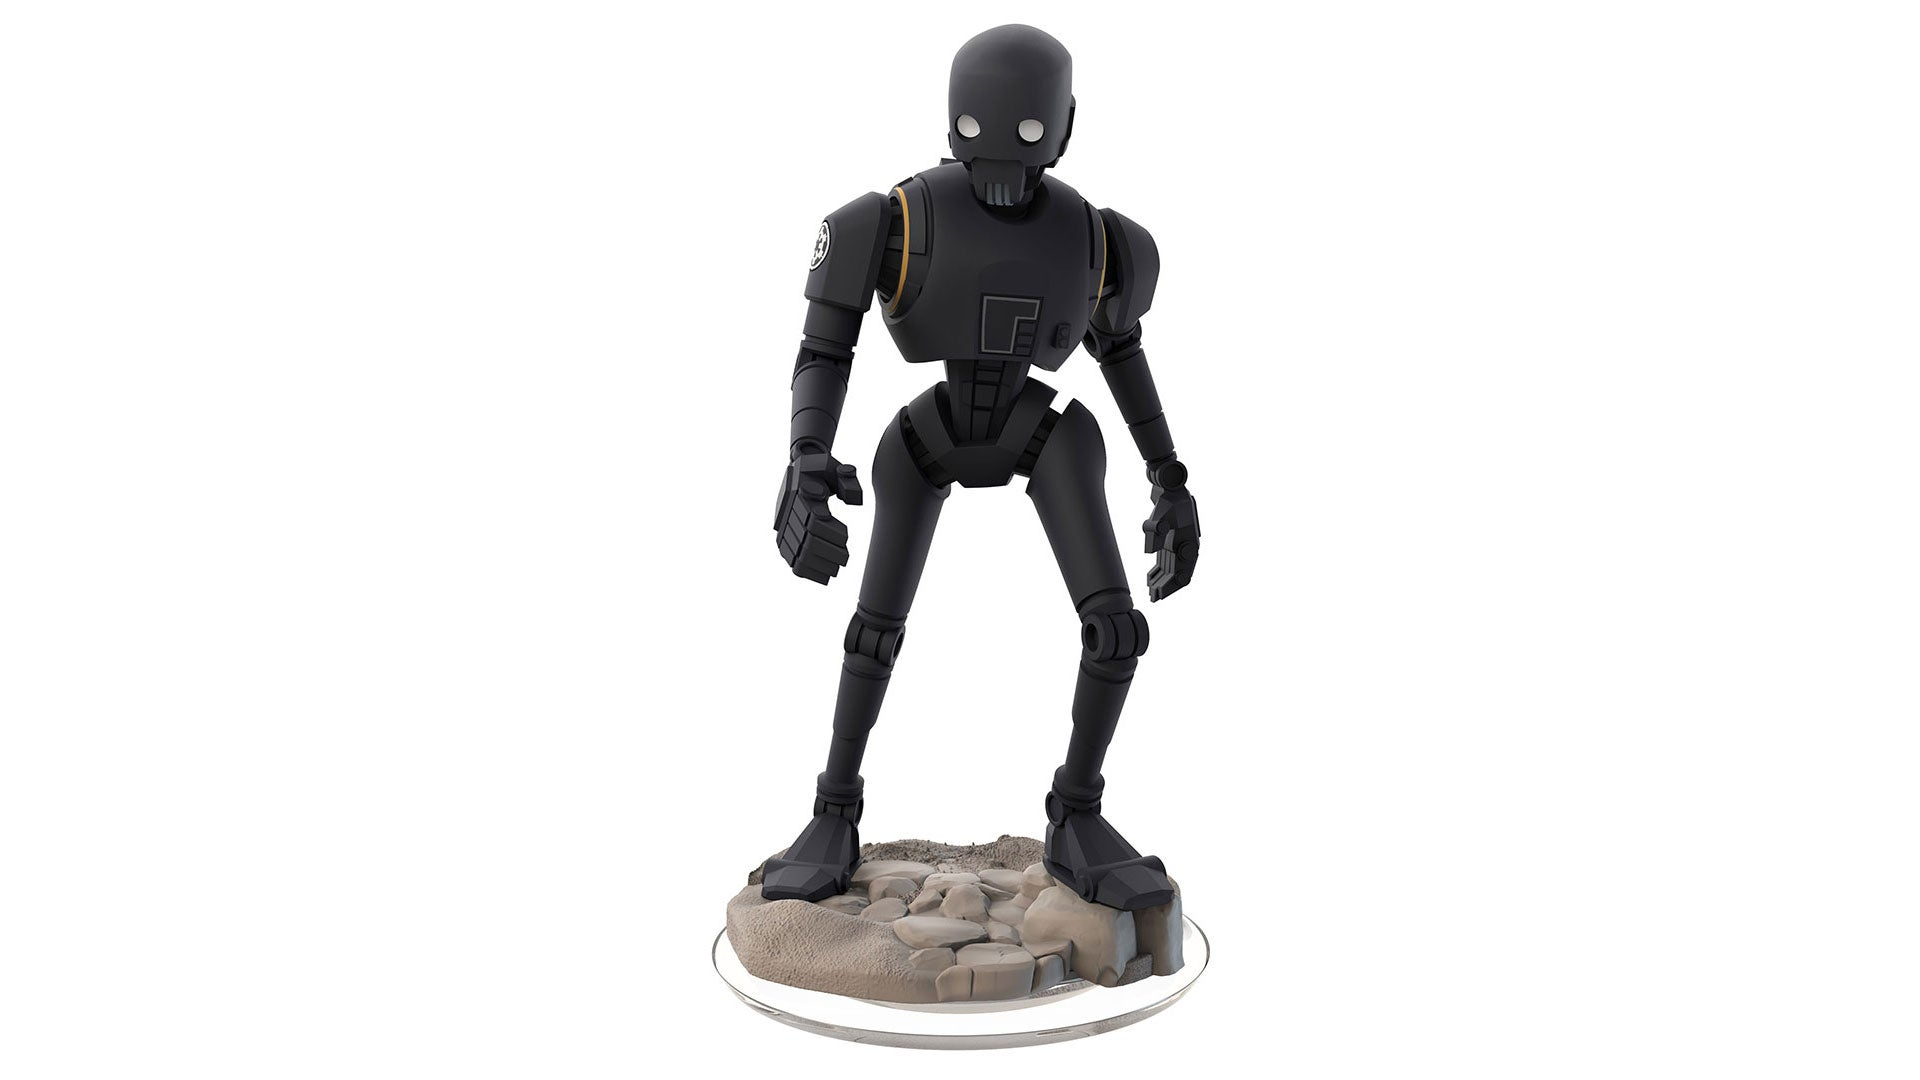 Another Cancelled Star Wars Disney Infinity Figure